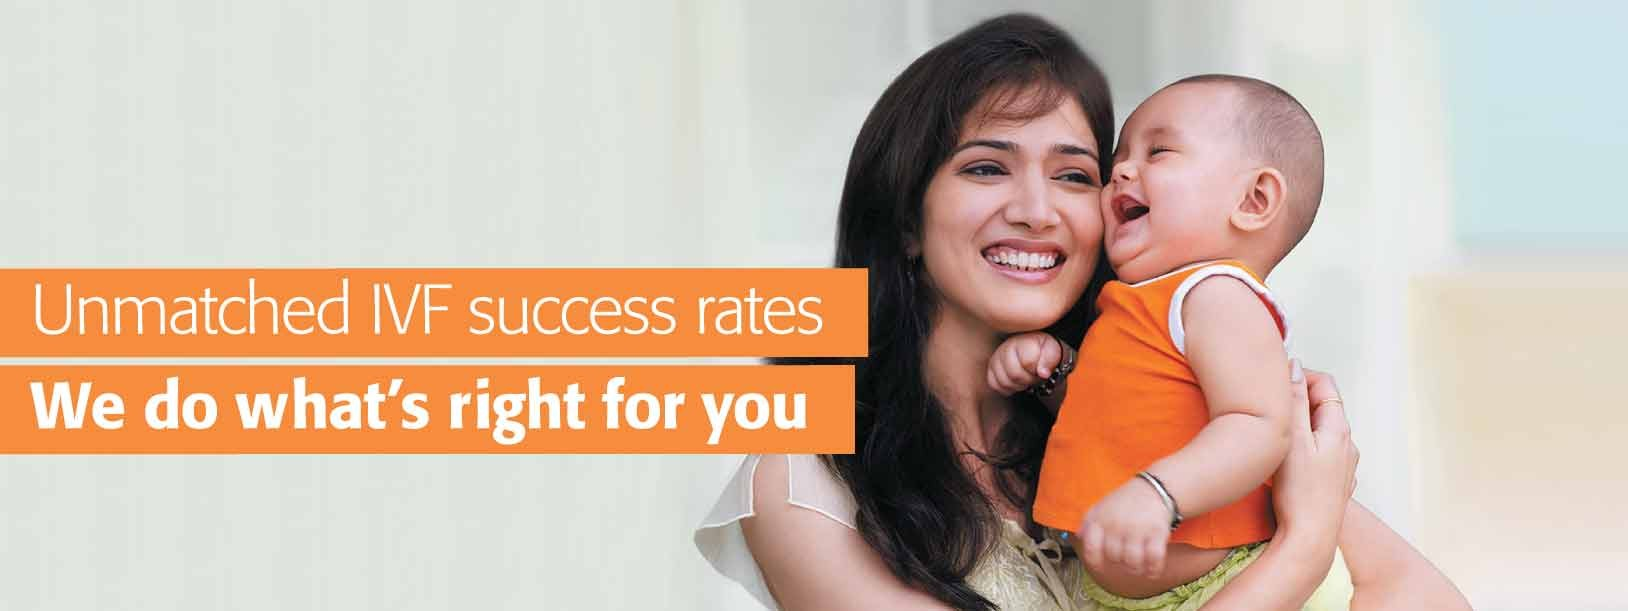 Unmatched IVF success rates. We do what's right for you